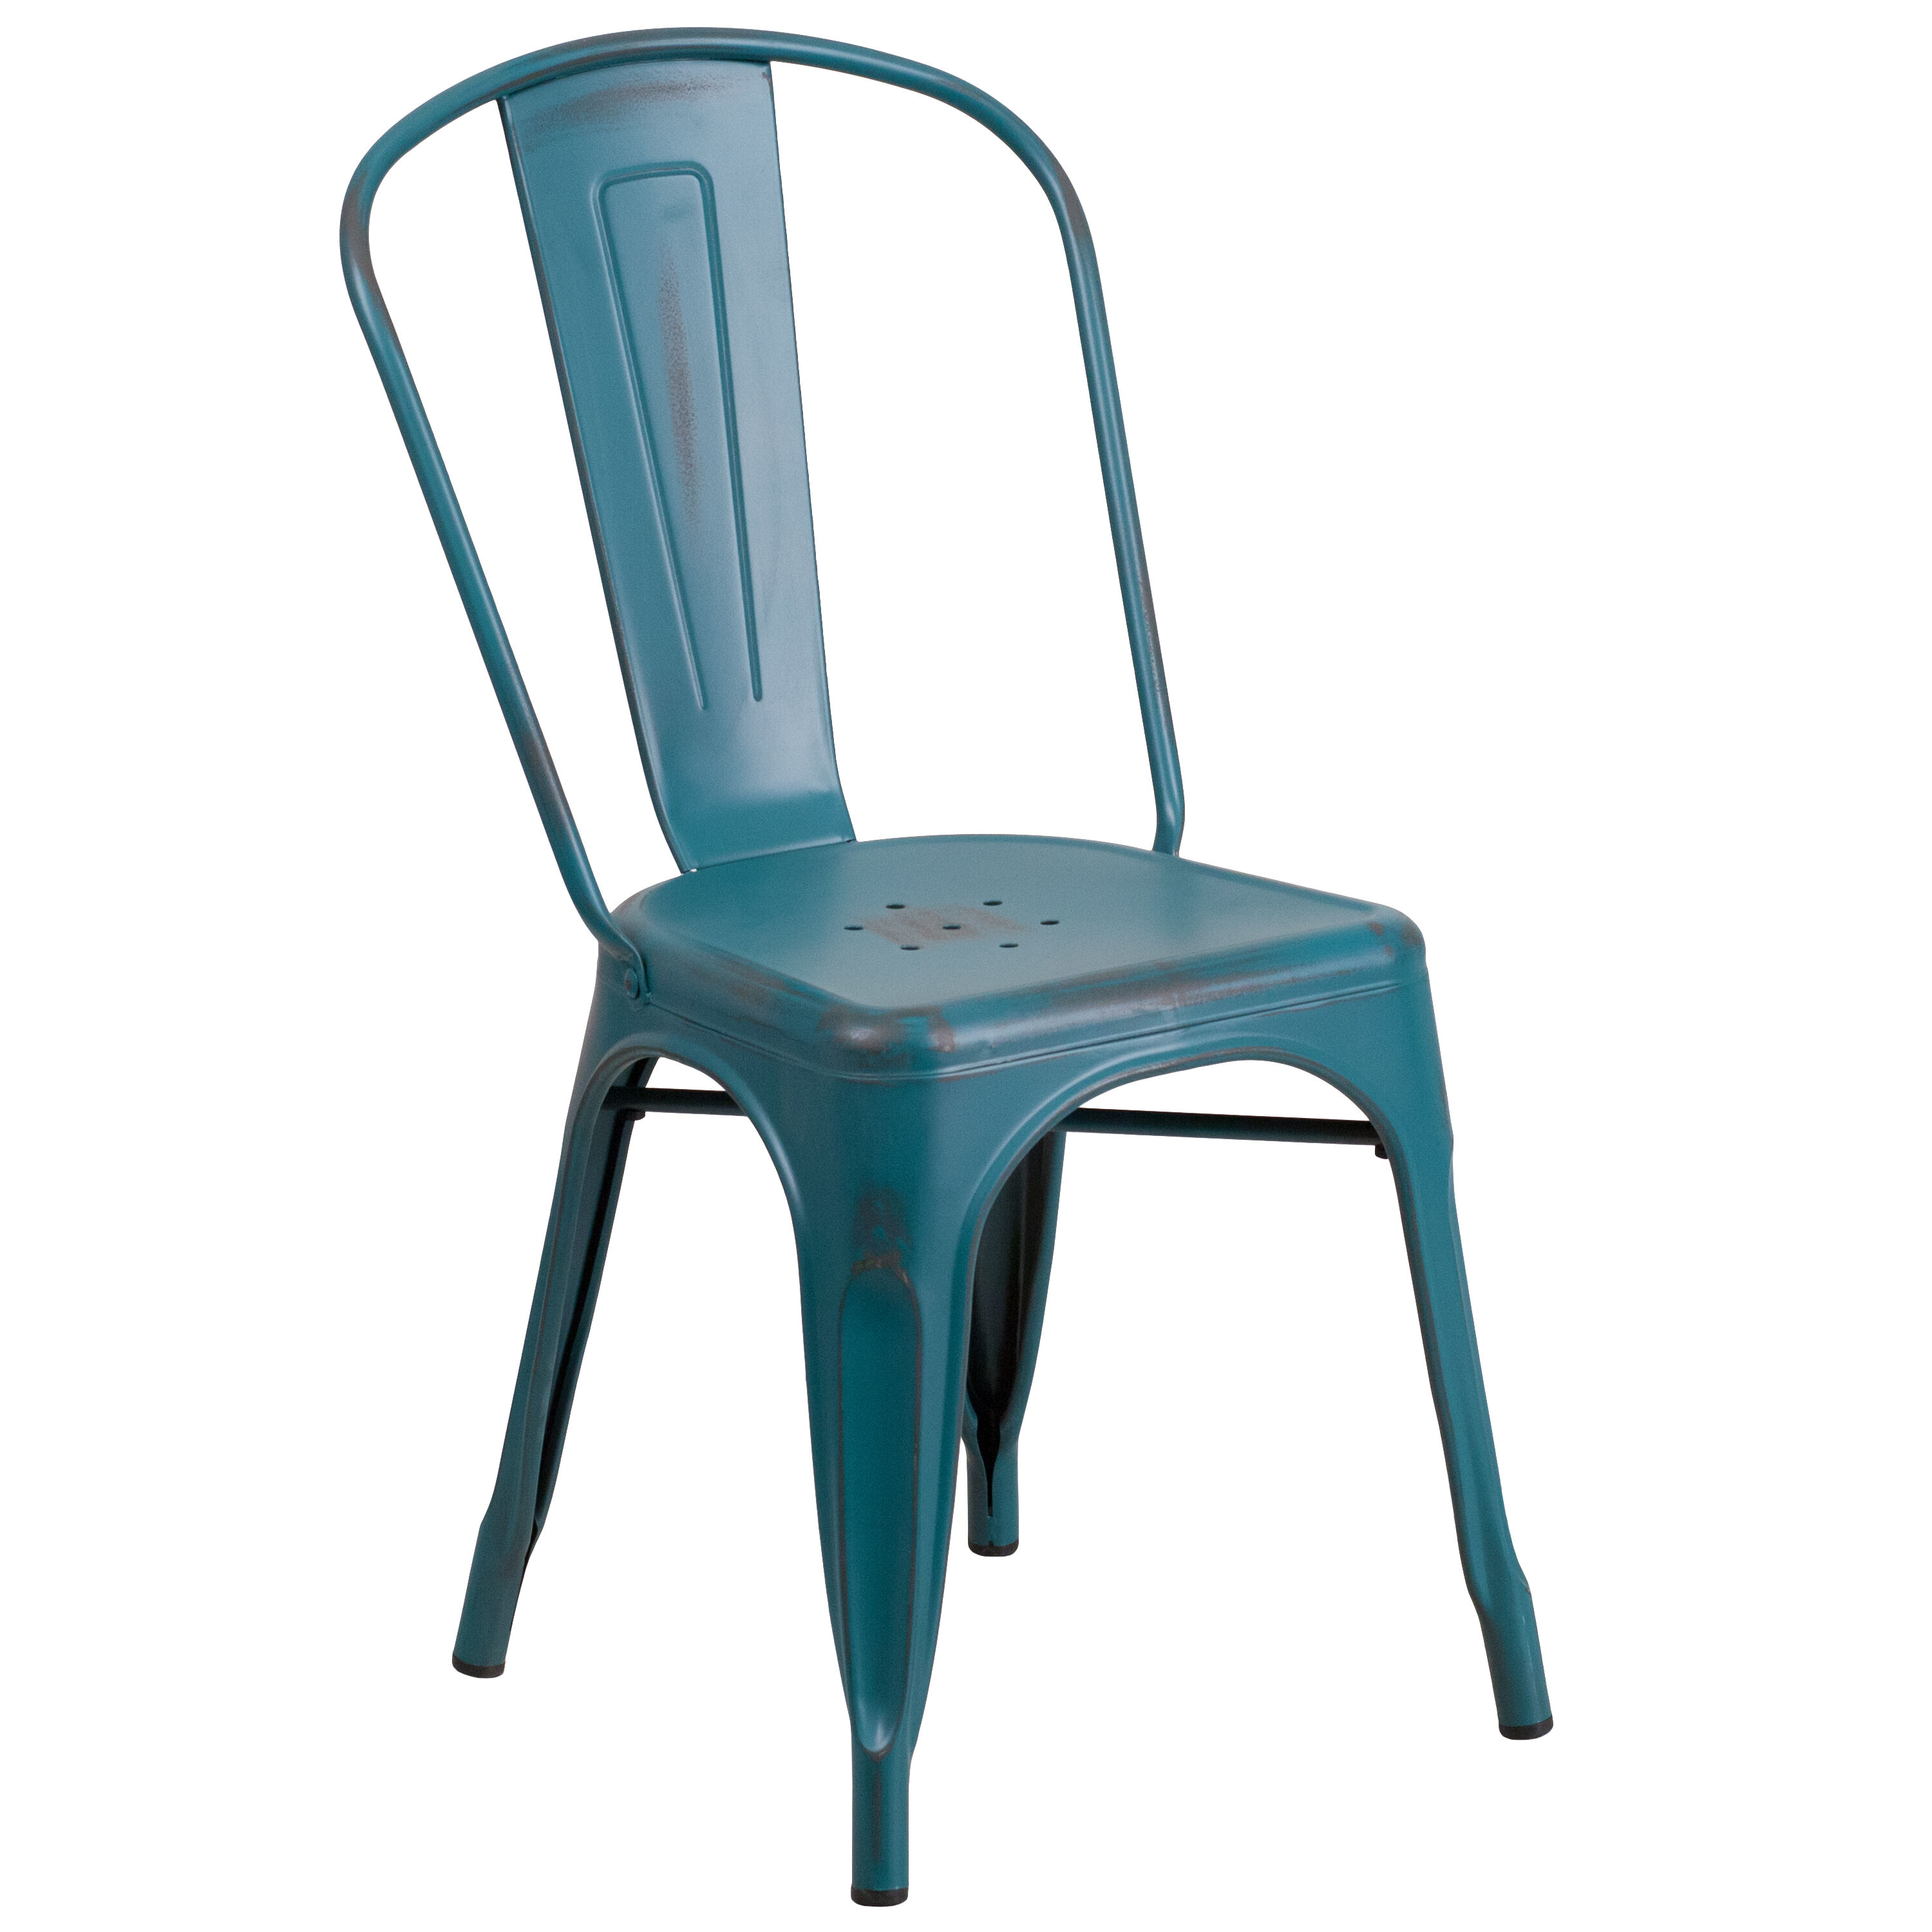 biz chair com white leather swivel desk distressed blue metal et 3534 kb gg bizchair our kelly teal indoor outdoor stackable is on sale now